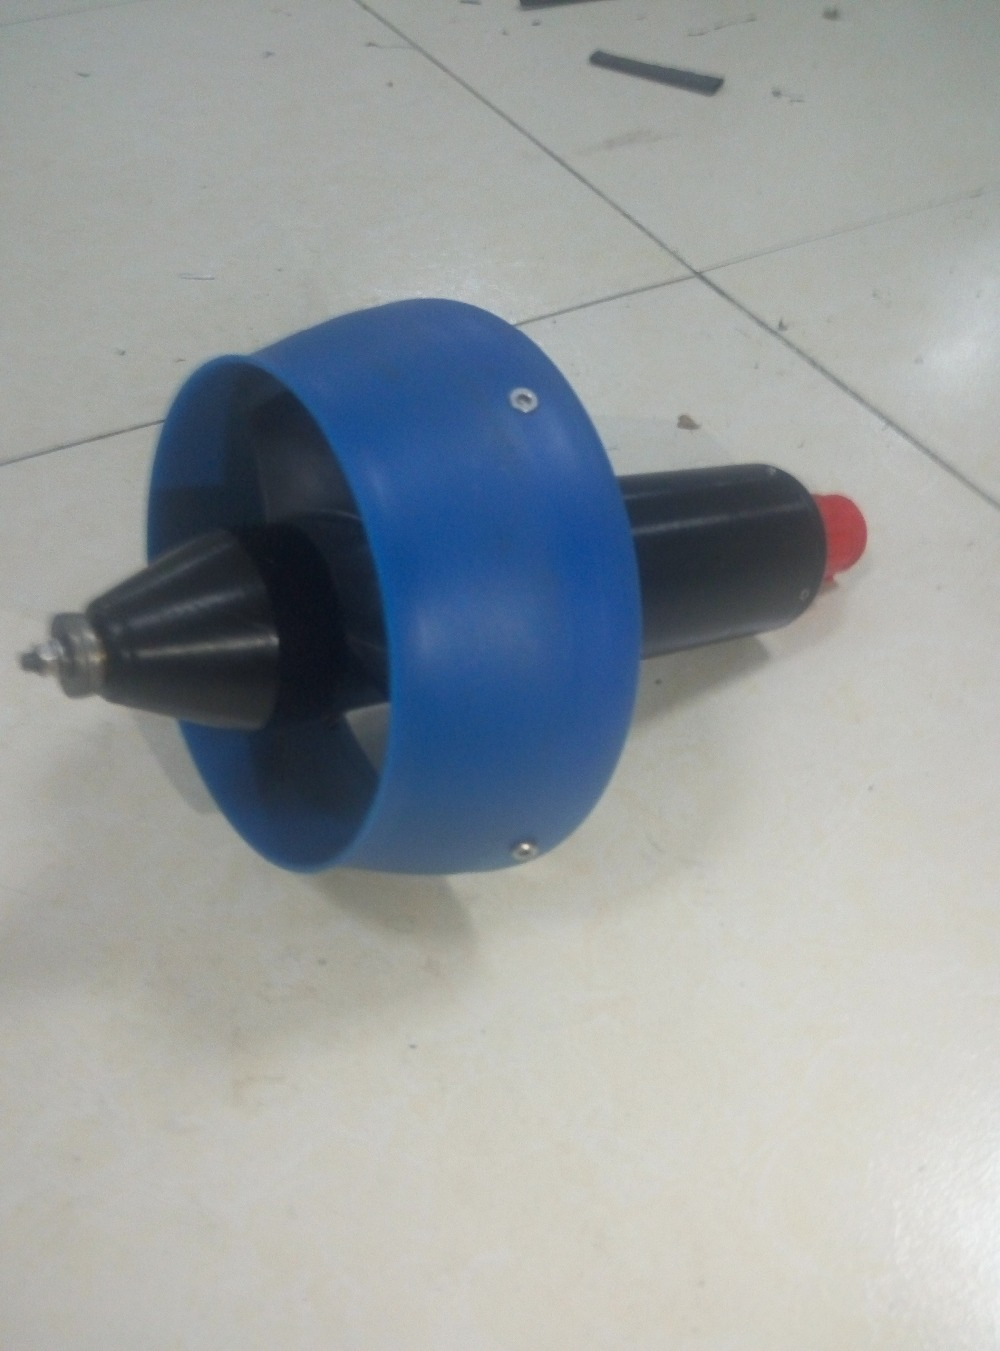 Underwater Thruster Brushless Motor Rov Auv Underwater Motor Electric Ship Propeller The